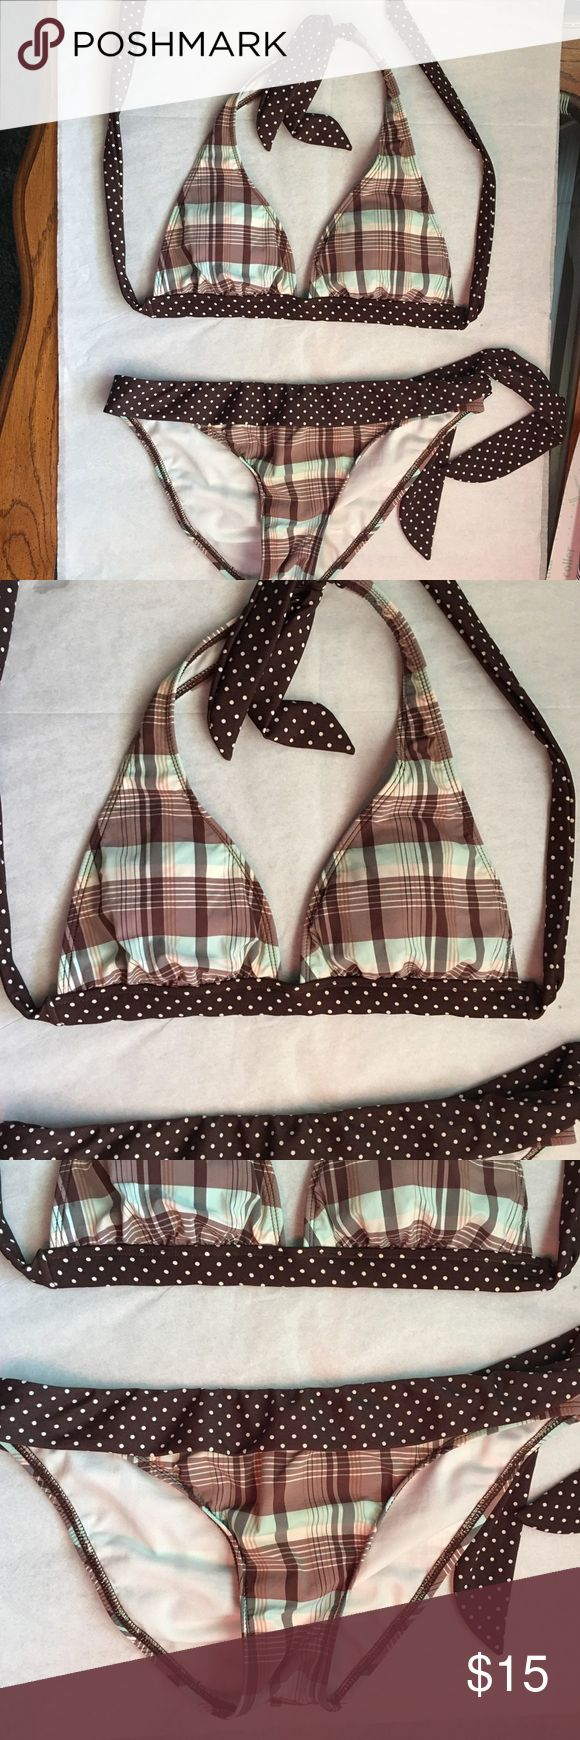 Brown polka dot and check bikini by Split. Size M. Summer is right around the corner so why not make a splash with this cute bikini by Split.  Brown, light blue and cream plaid, trimmed in brown and white polka dots.  Size Medium. Bikini cut bottom with side tie and triangle halter top with soft cup inserts.  Gently loved condition, freshly hand washed and from smoke free home. Split Swim Bikinis